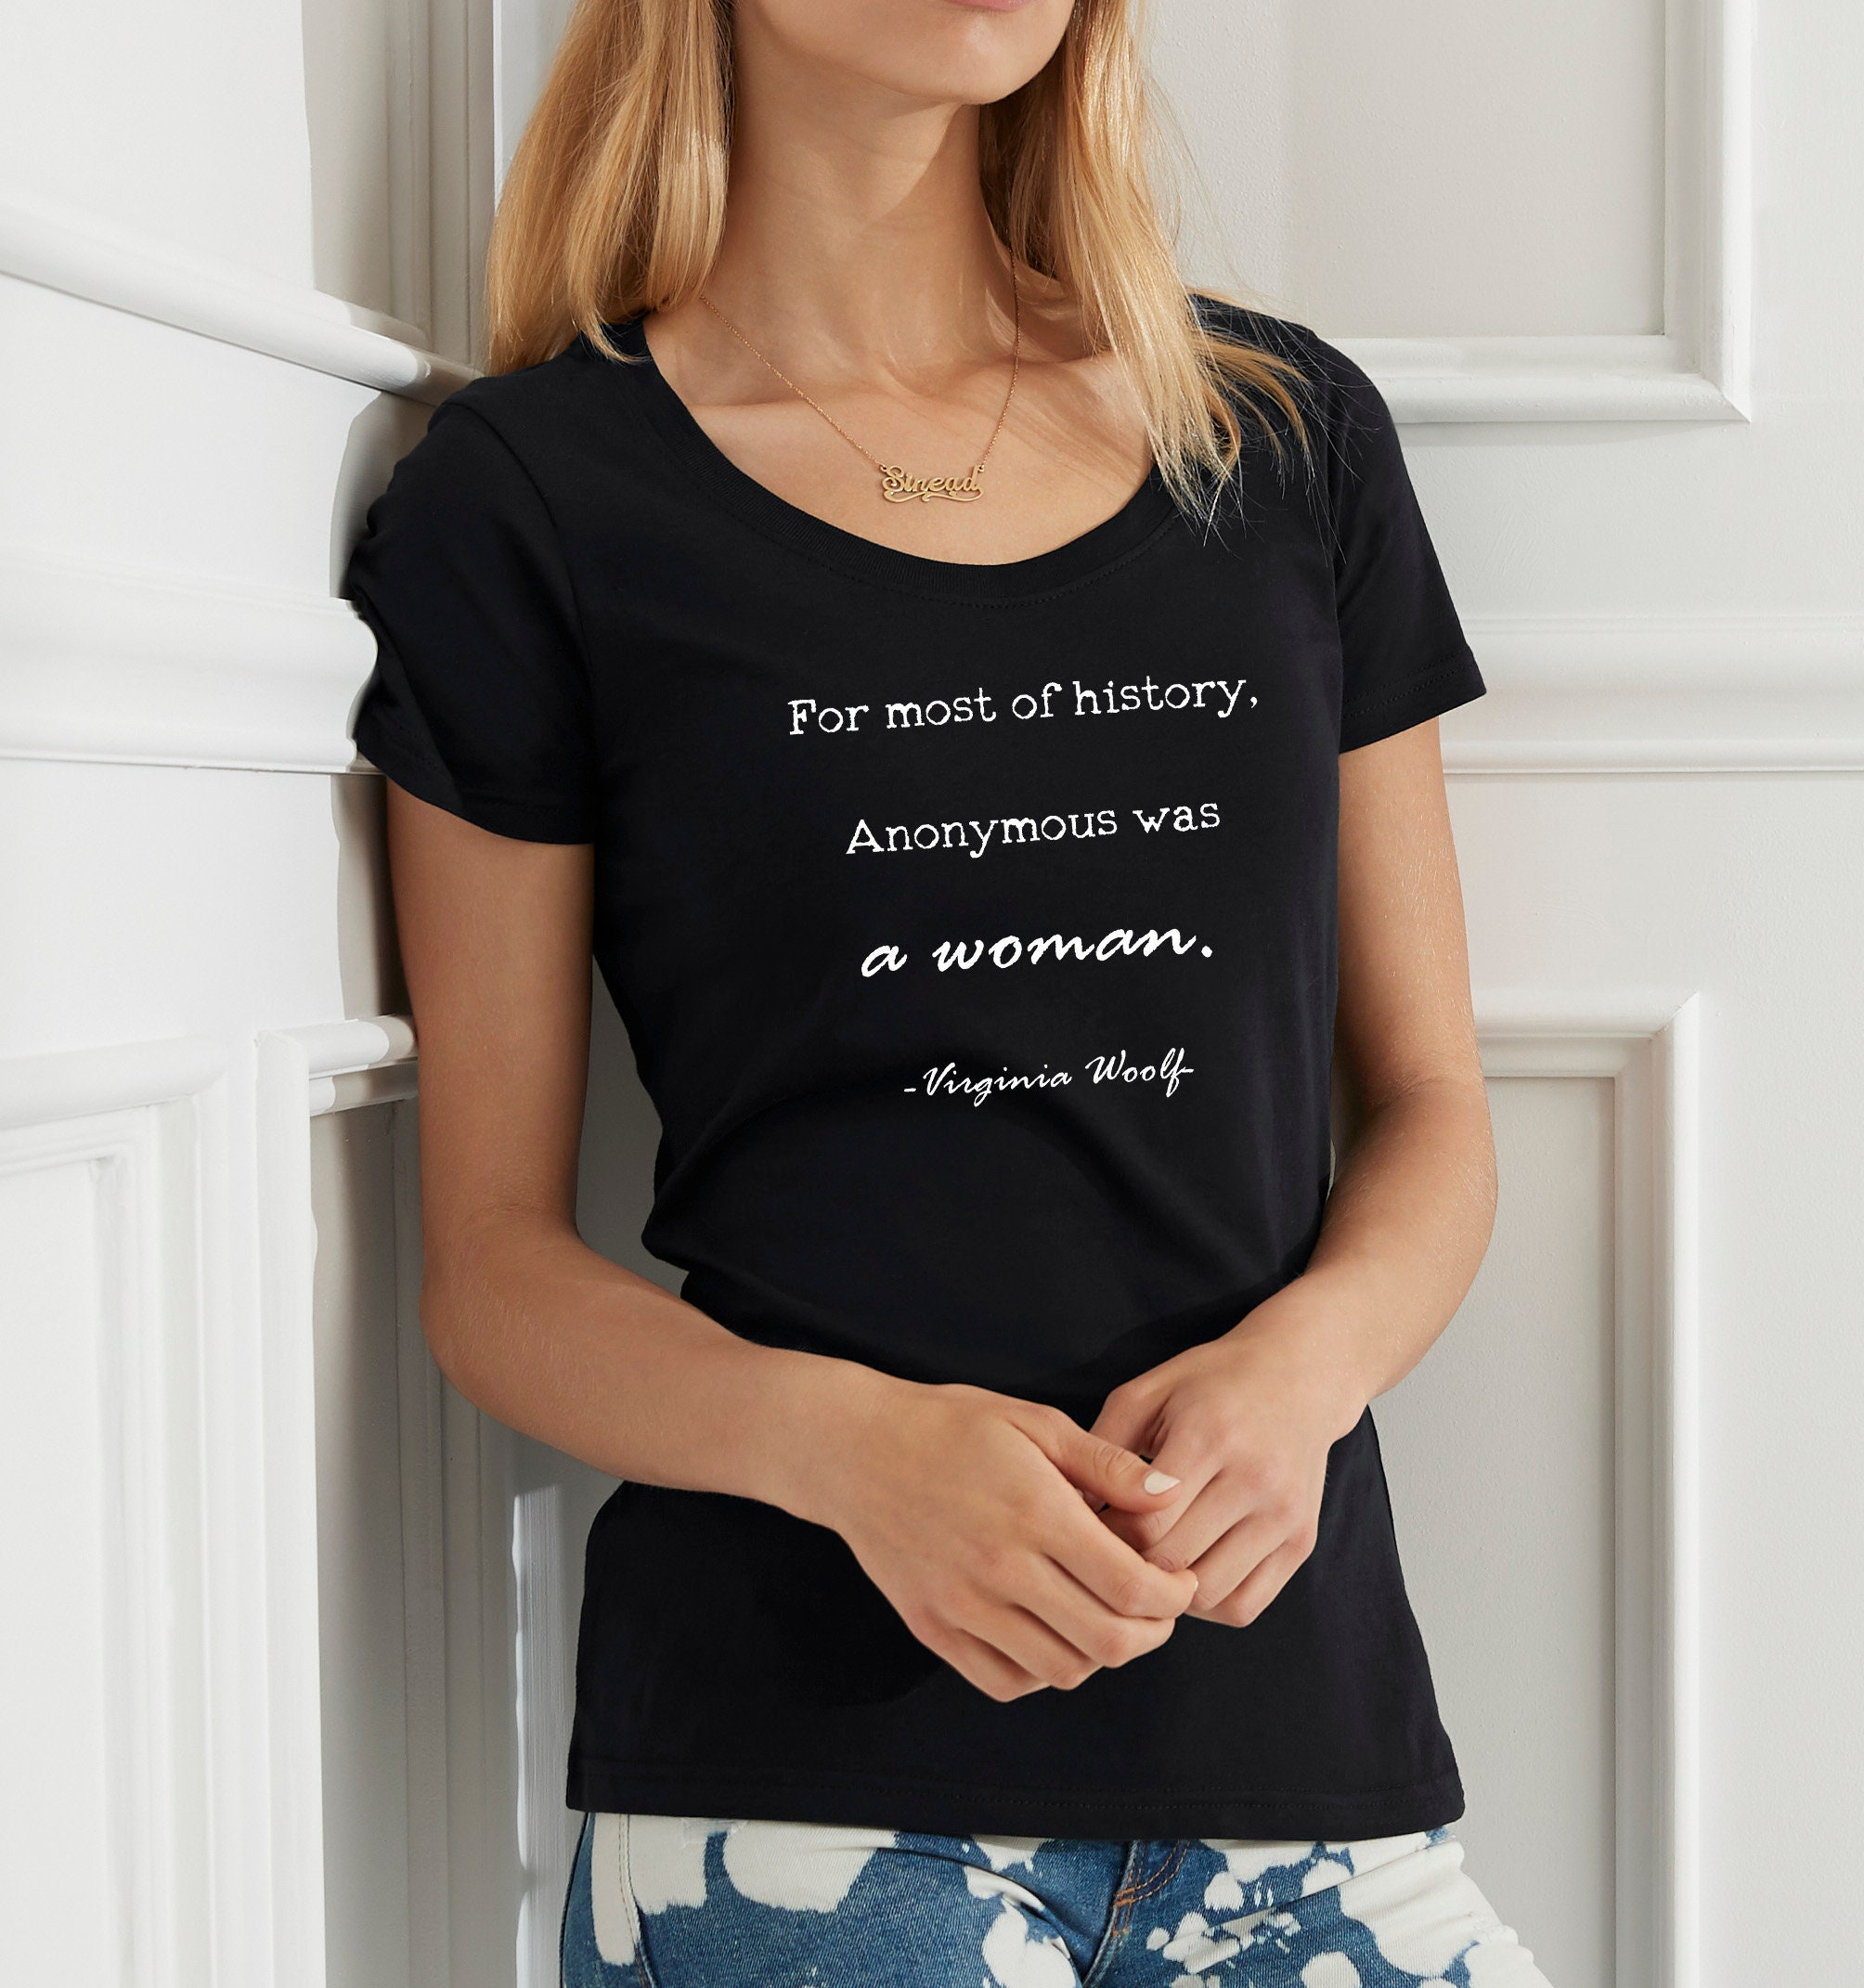 Virginia Woolf Quote Womens Shirt For Most Of History Etsy